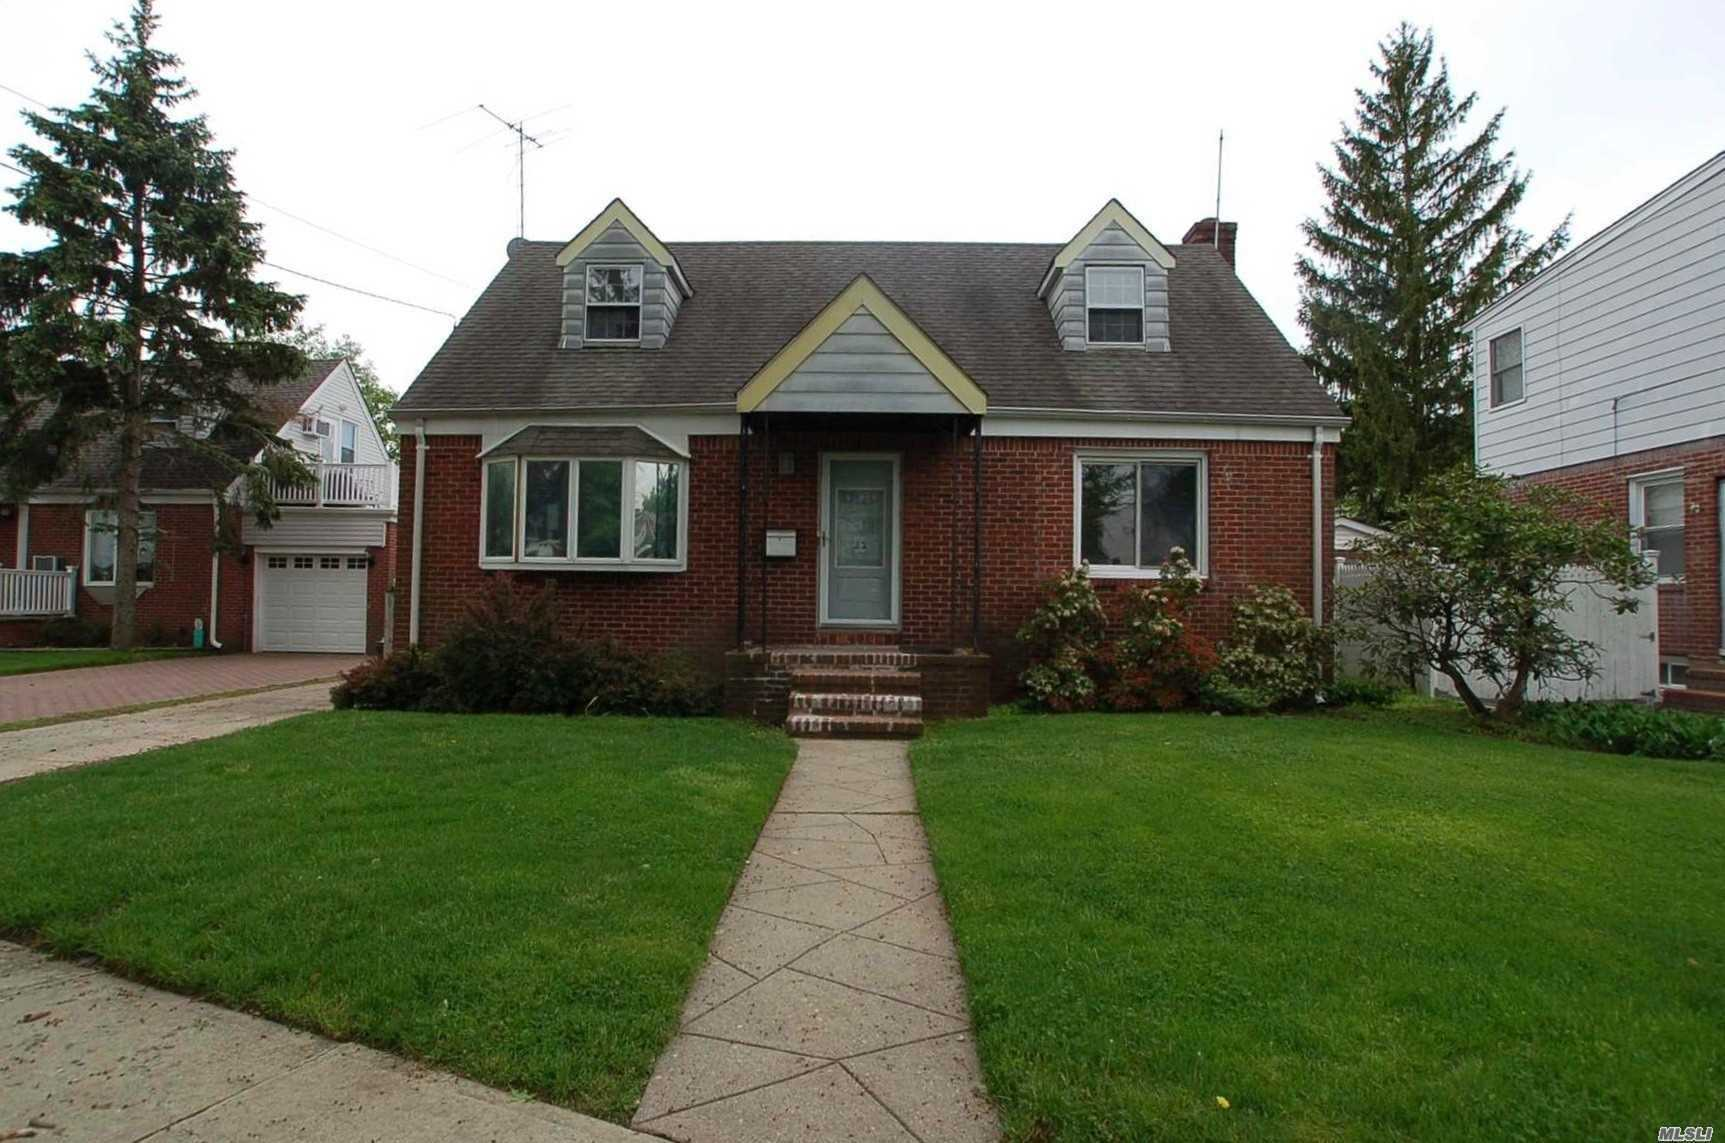 Price Reduction!!! Lovely 4 Br/1 Bath Cape. Beautiful Street In Pilgrim Estates. Updated Kitchen & Bath. Hardwood Floors Throughout. Master Bedroom On First Floor. Private Backyard. New Hyde Park School District. Walking Distance To Buses, Shops And Schools.